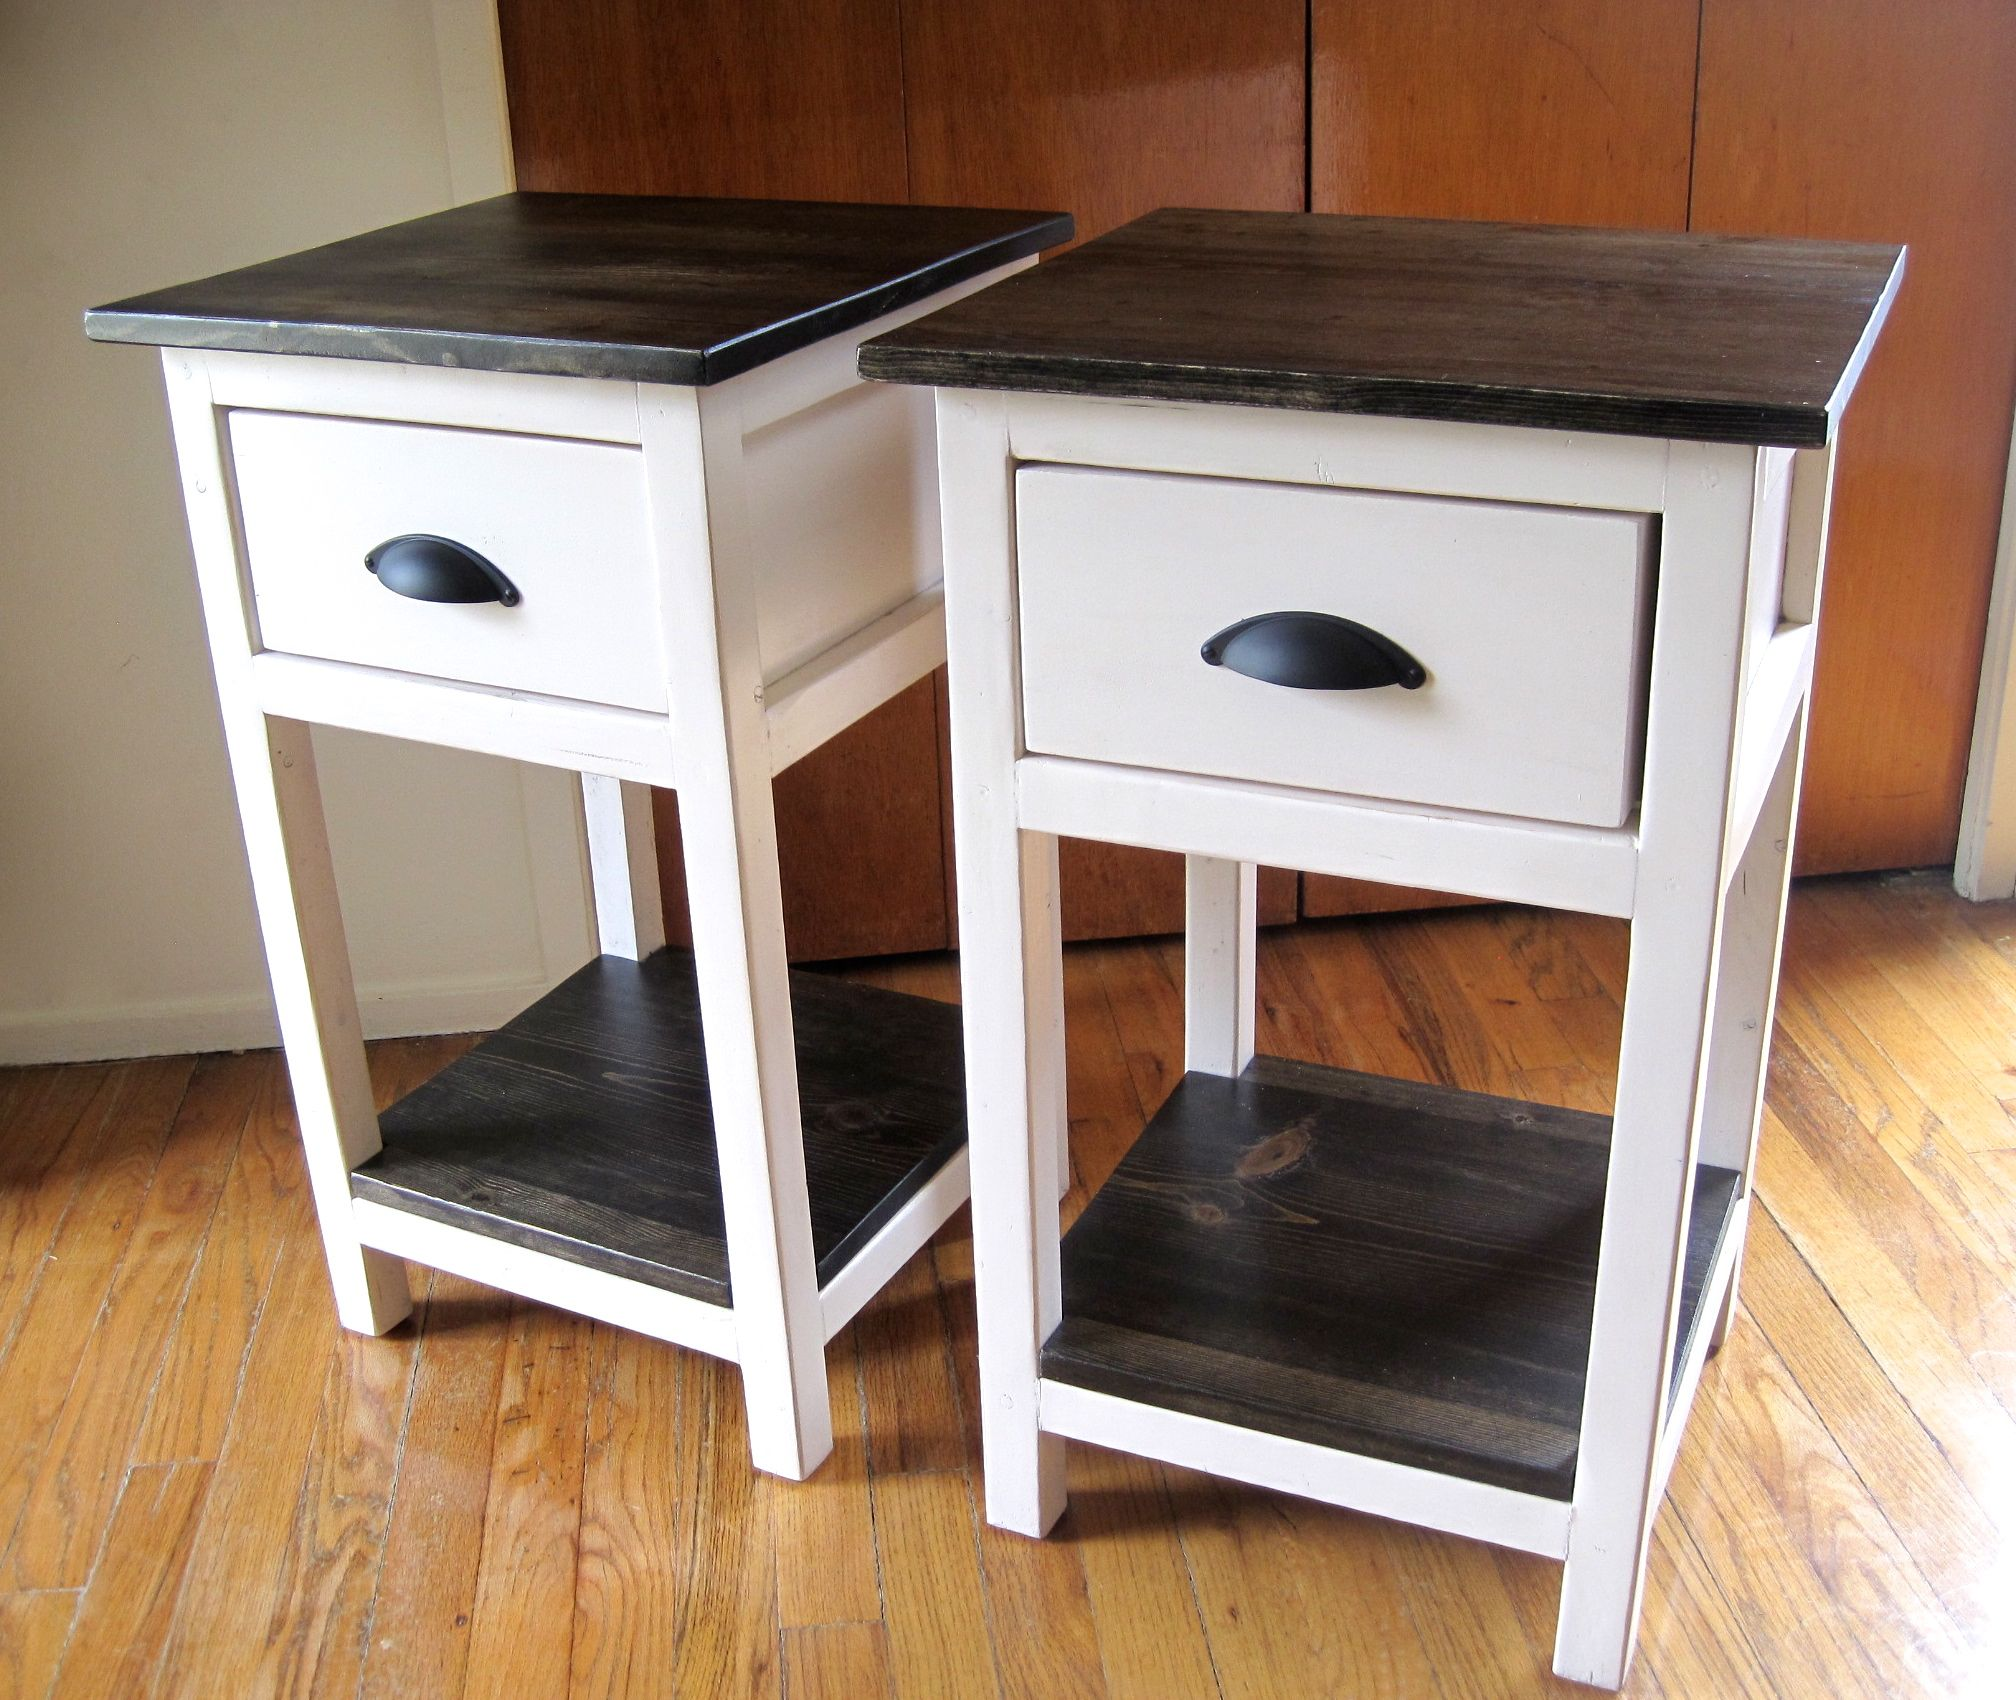 Ana white build a mini farmhouse bedside table plans Simple bedside table designs